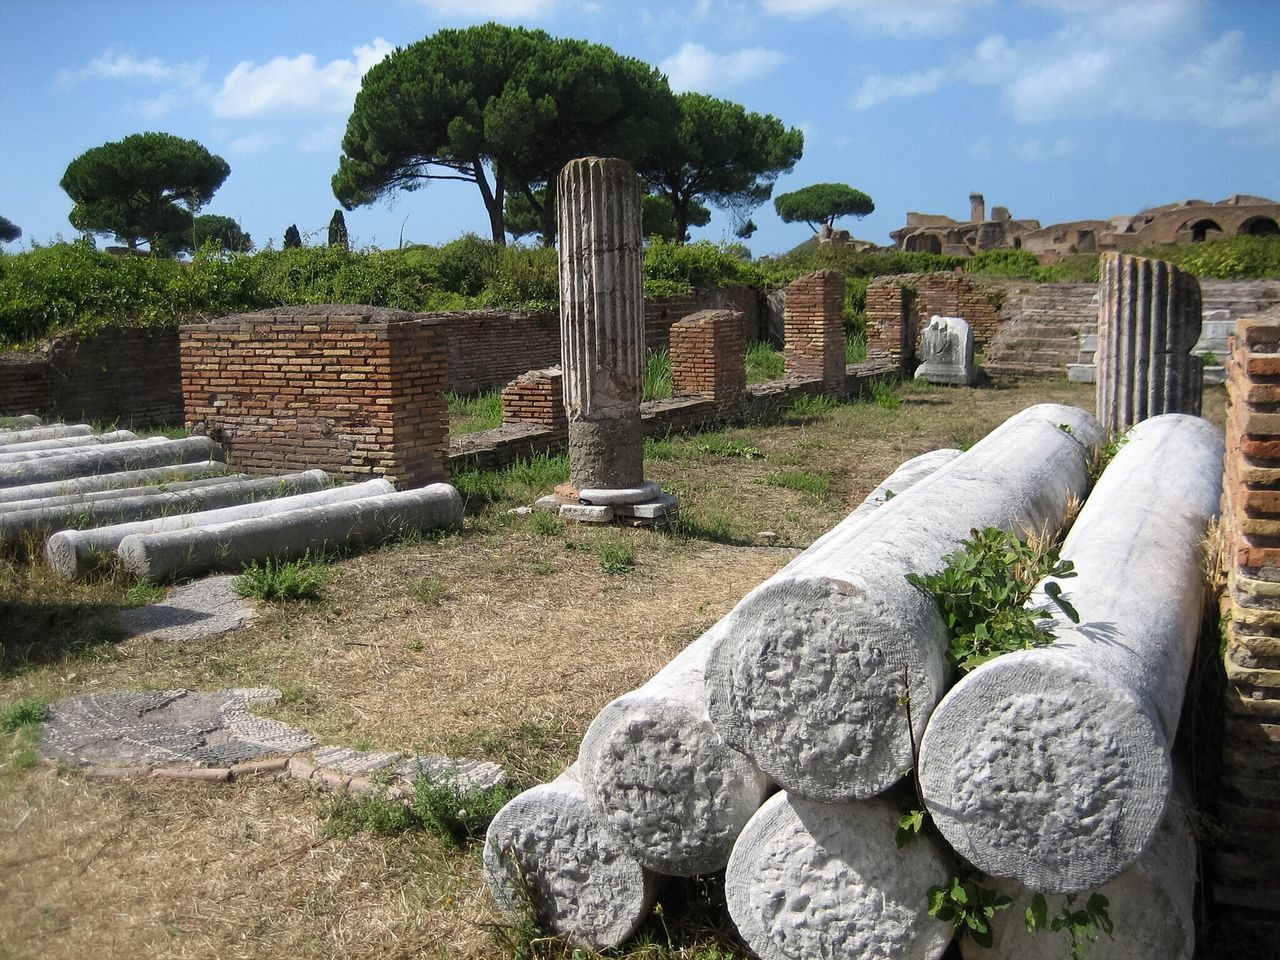 Sky Green Color Tree Outdoors Religion No People History Day Ancient Civilization Ostia Antica Tourism Travel Ruins Historic Historical Monuments Roman Roman Empire Colums Bricks Landscapes Italy Italy❤️ Adapted To The City Miles Away